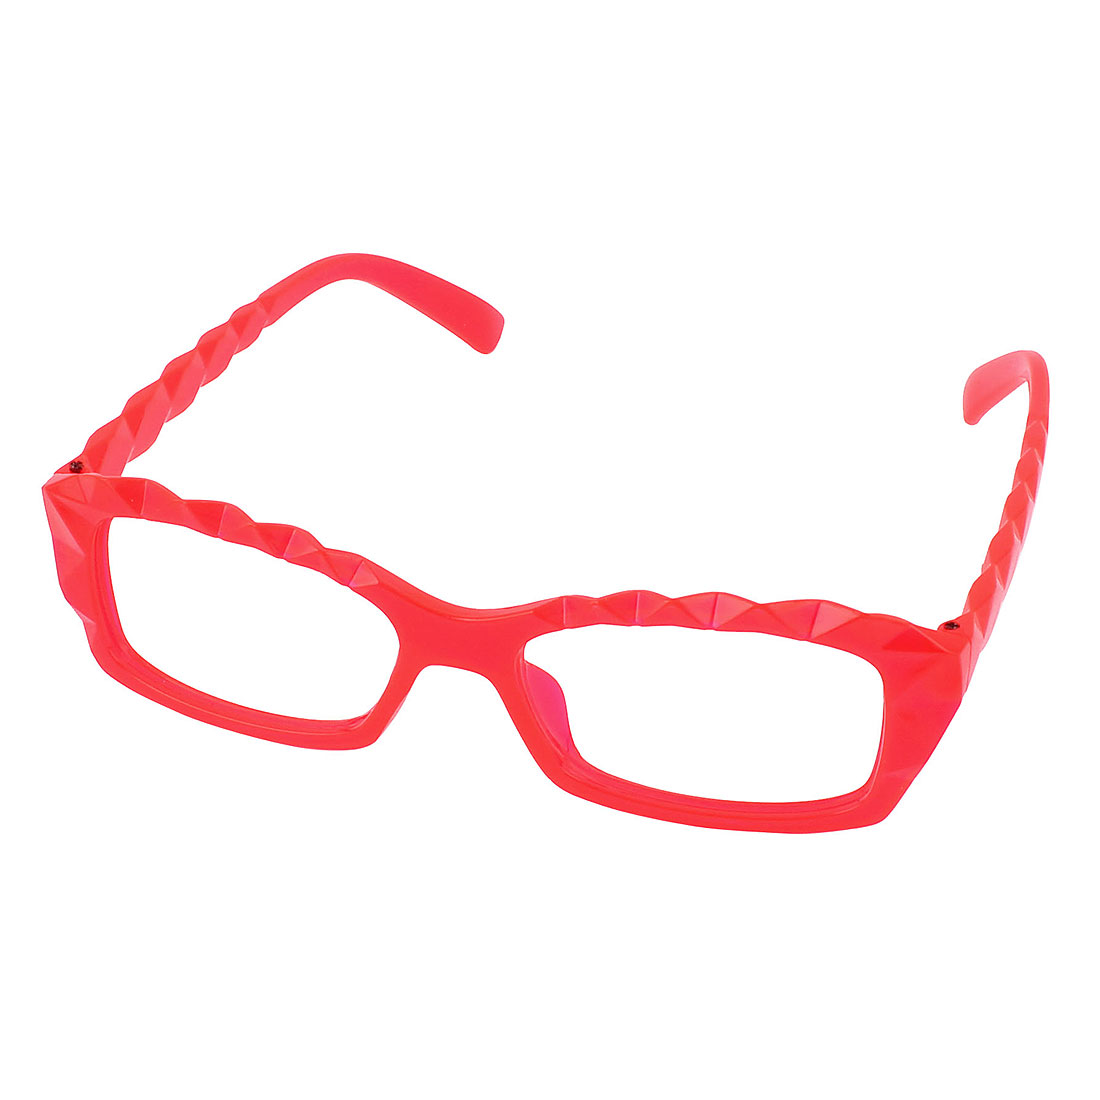 Lady Geek Plastic Faceted Decorative Lensless Glasses Eyeglasses Frame Red